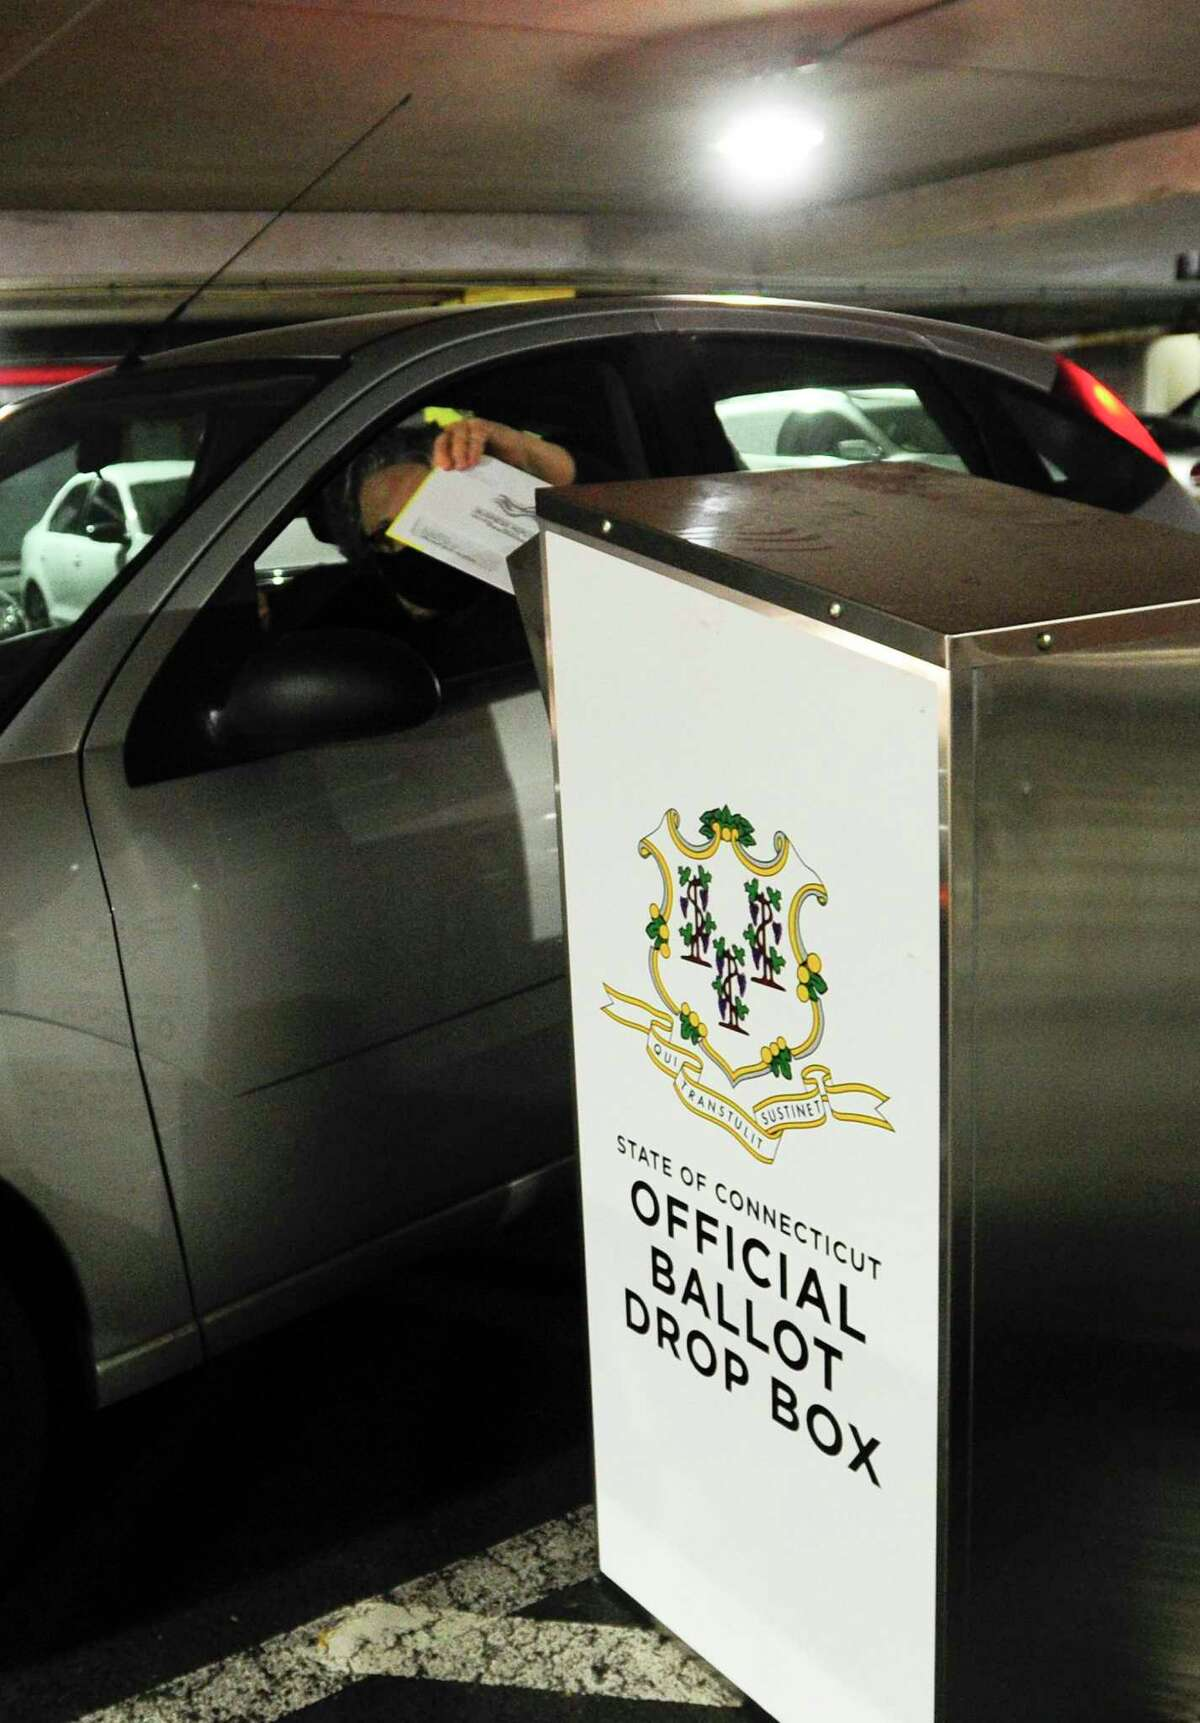 A resident deposits an absentee ballot in an Official Ballot Drop Box at the Stamford Government Center on August 11, 2020 in Stamford, Connecticut.